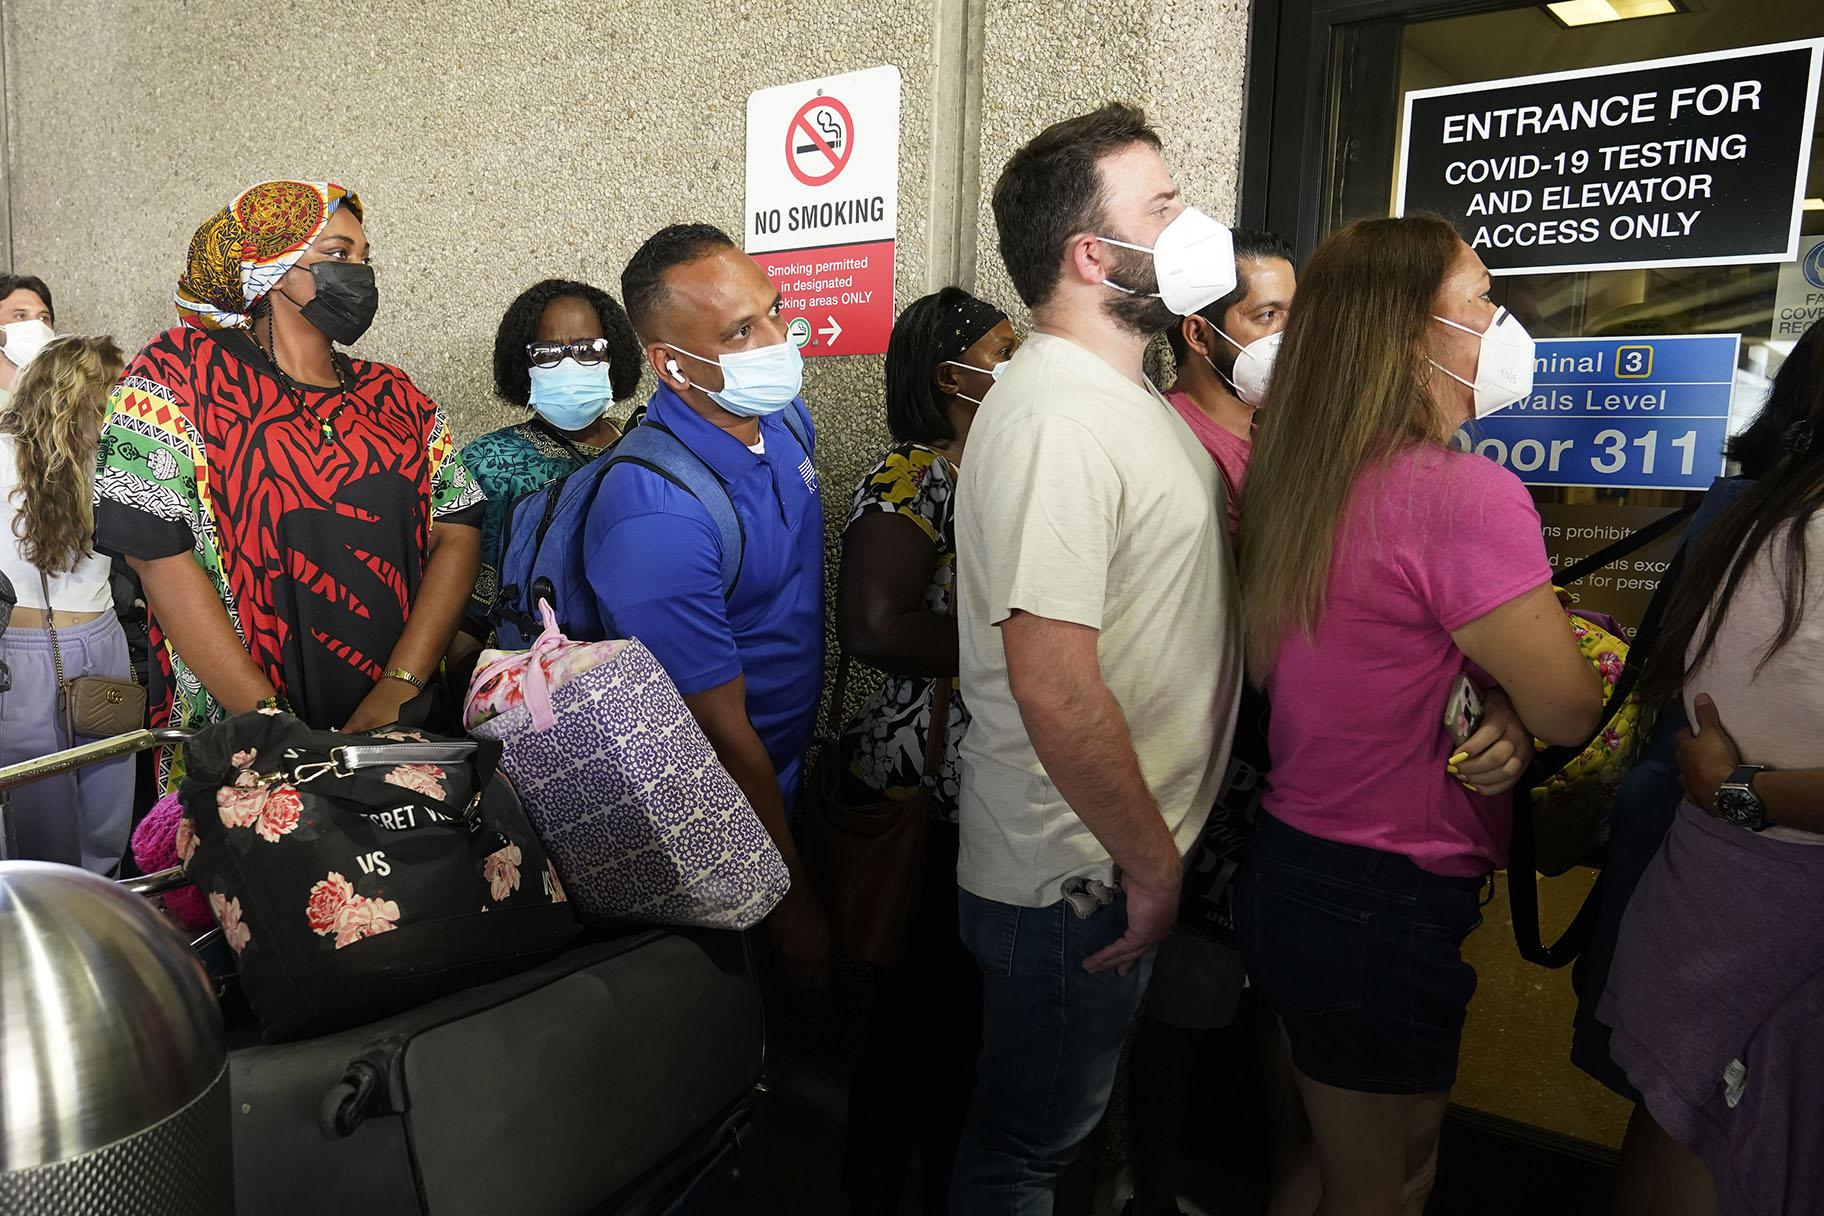 Passengers wait in a long line to get a COVID-19 test to travel overseas at Fort Lauderdale-Hollywood International Airport, Friday, Aug. 6, 2021, in Fort Lauderdale, Fla. Recent flight cancelations caused many passengers to redo their tests while others were unable to get the test locally due to long lines caused by the surge of the Delta variant. (AP Photo / Marta Lavandier)